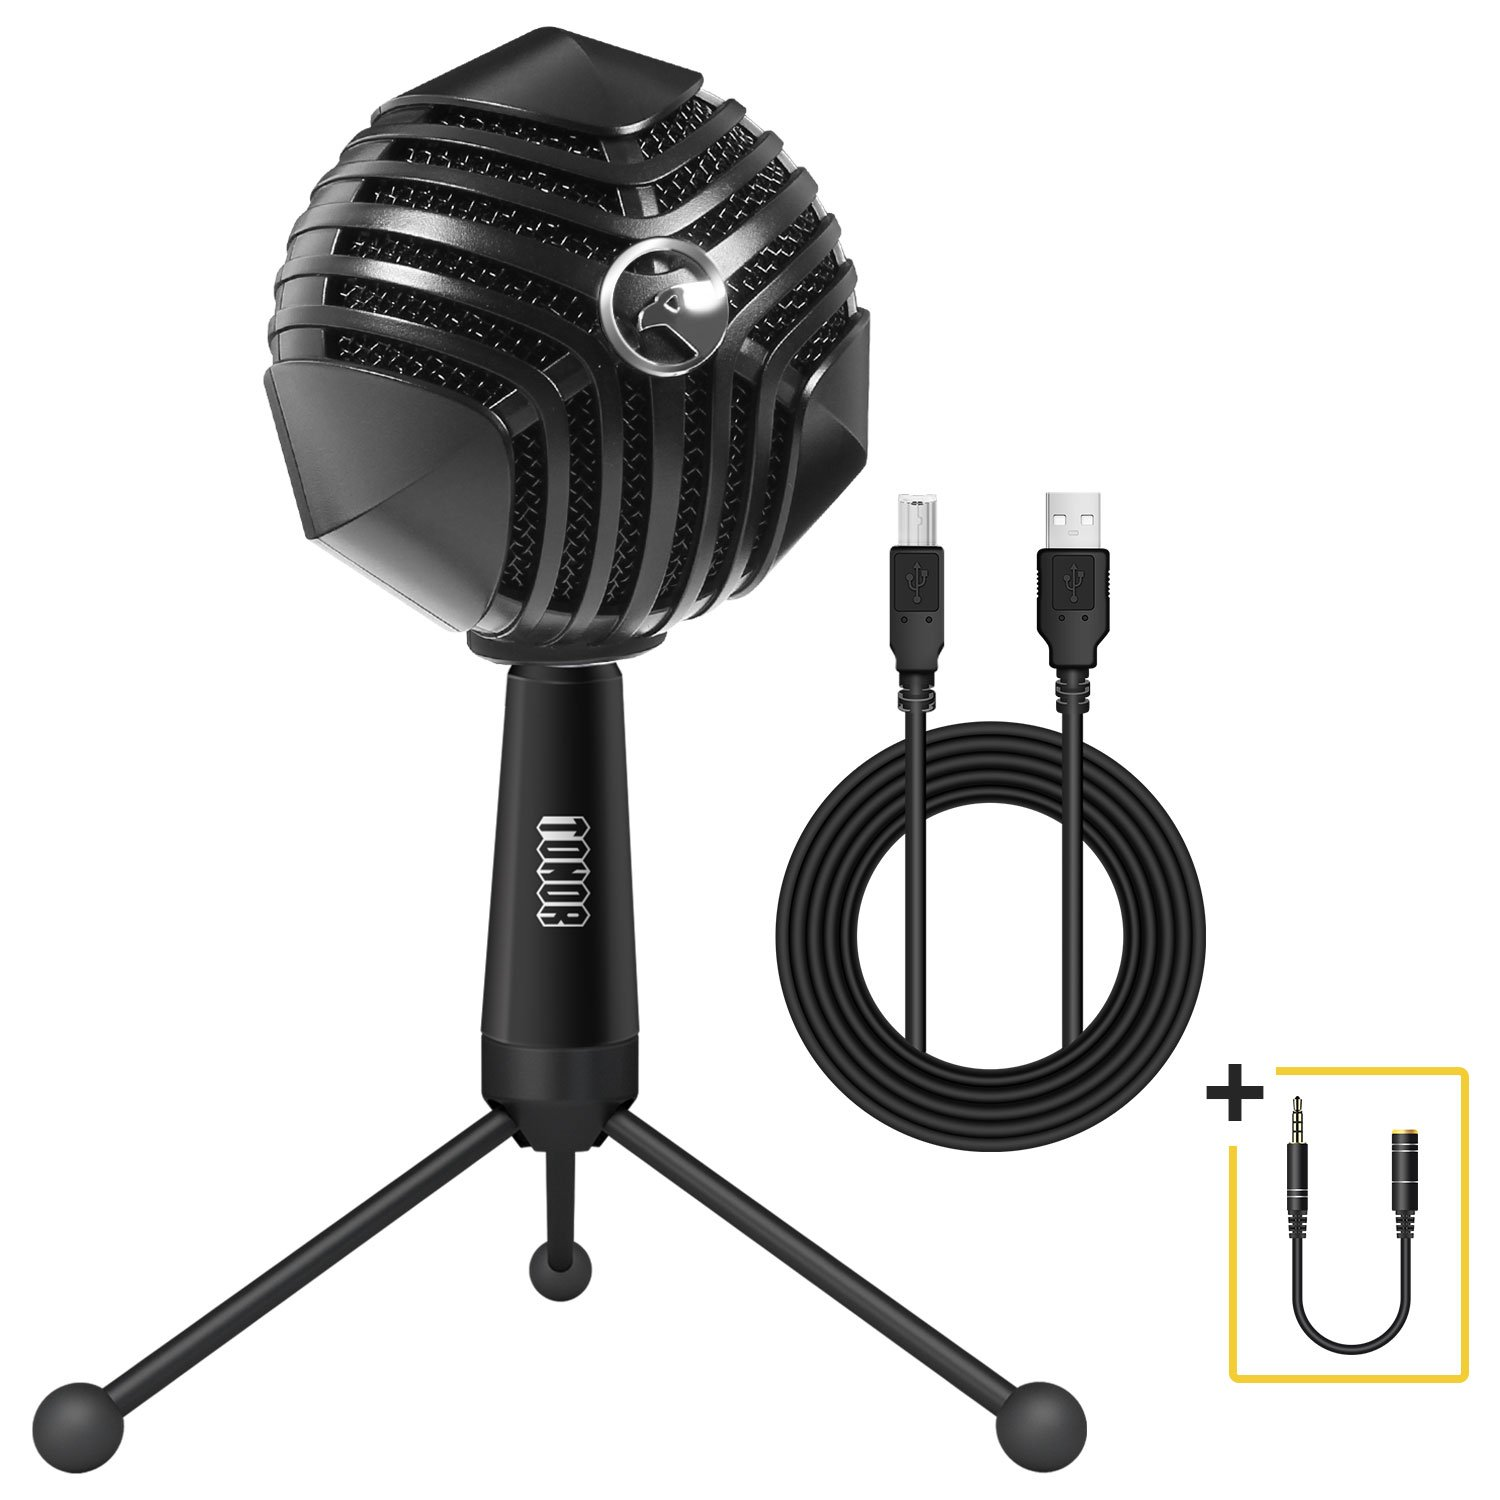 TONOR USB PC Microphone Condenser Plug&Play Mic Laptop with Mute Button and Voice Control for Podcast/Chatting/Youtube/Skype/Recording/Gaming Compatible with Mac or Windows Computer